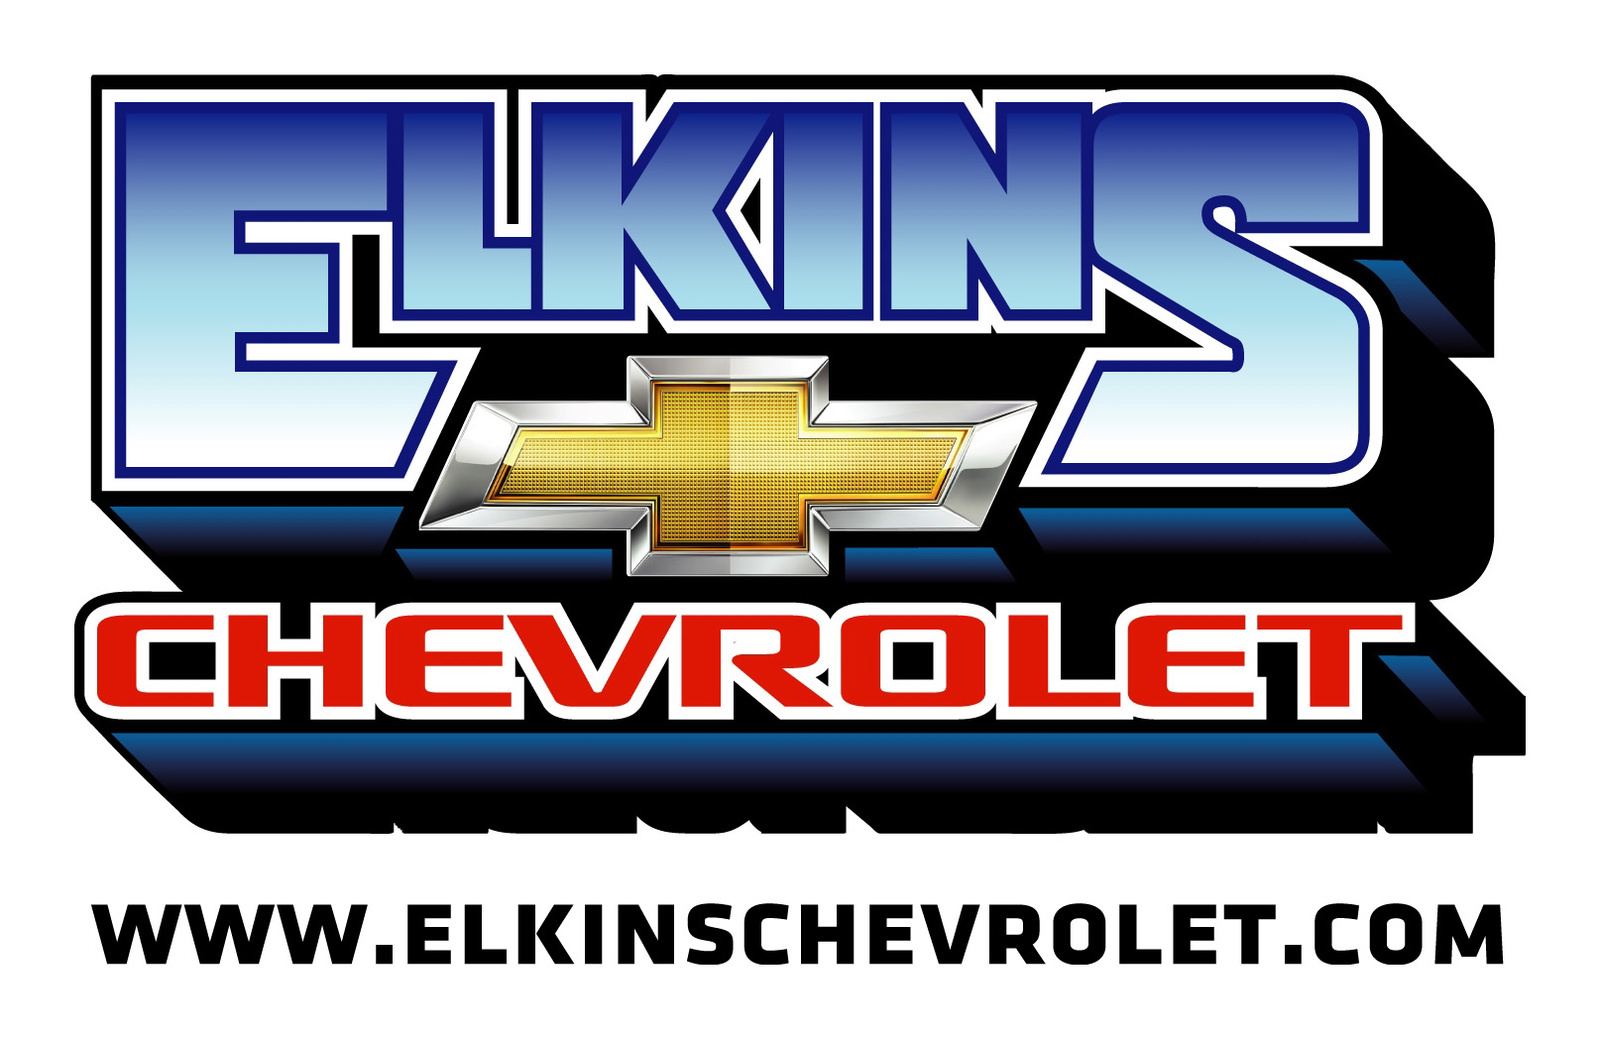 Ford Dealers Nj >> Elkins Chevrolet - Marlton, NJ: Read Consumer reviews, Browse Used and New Cars for Sale